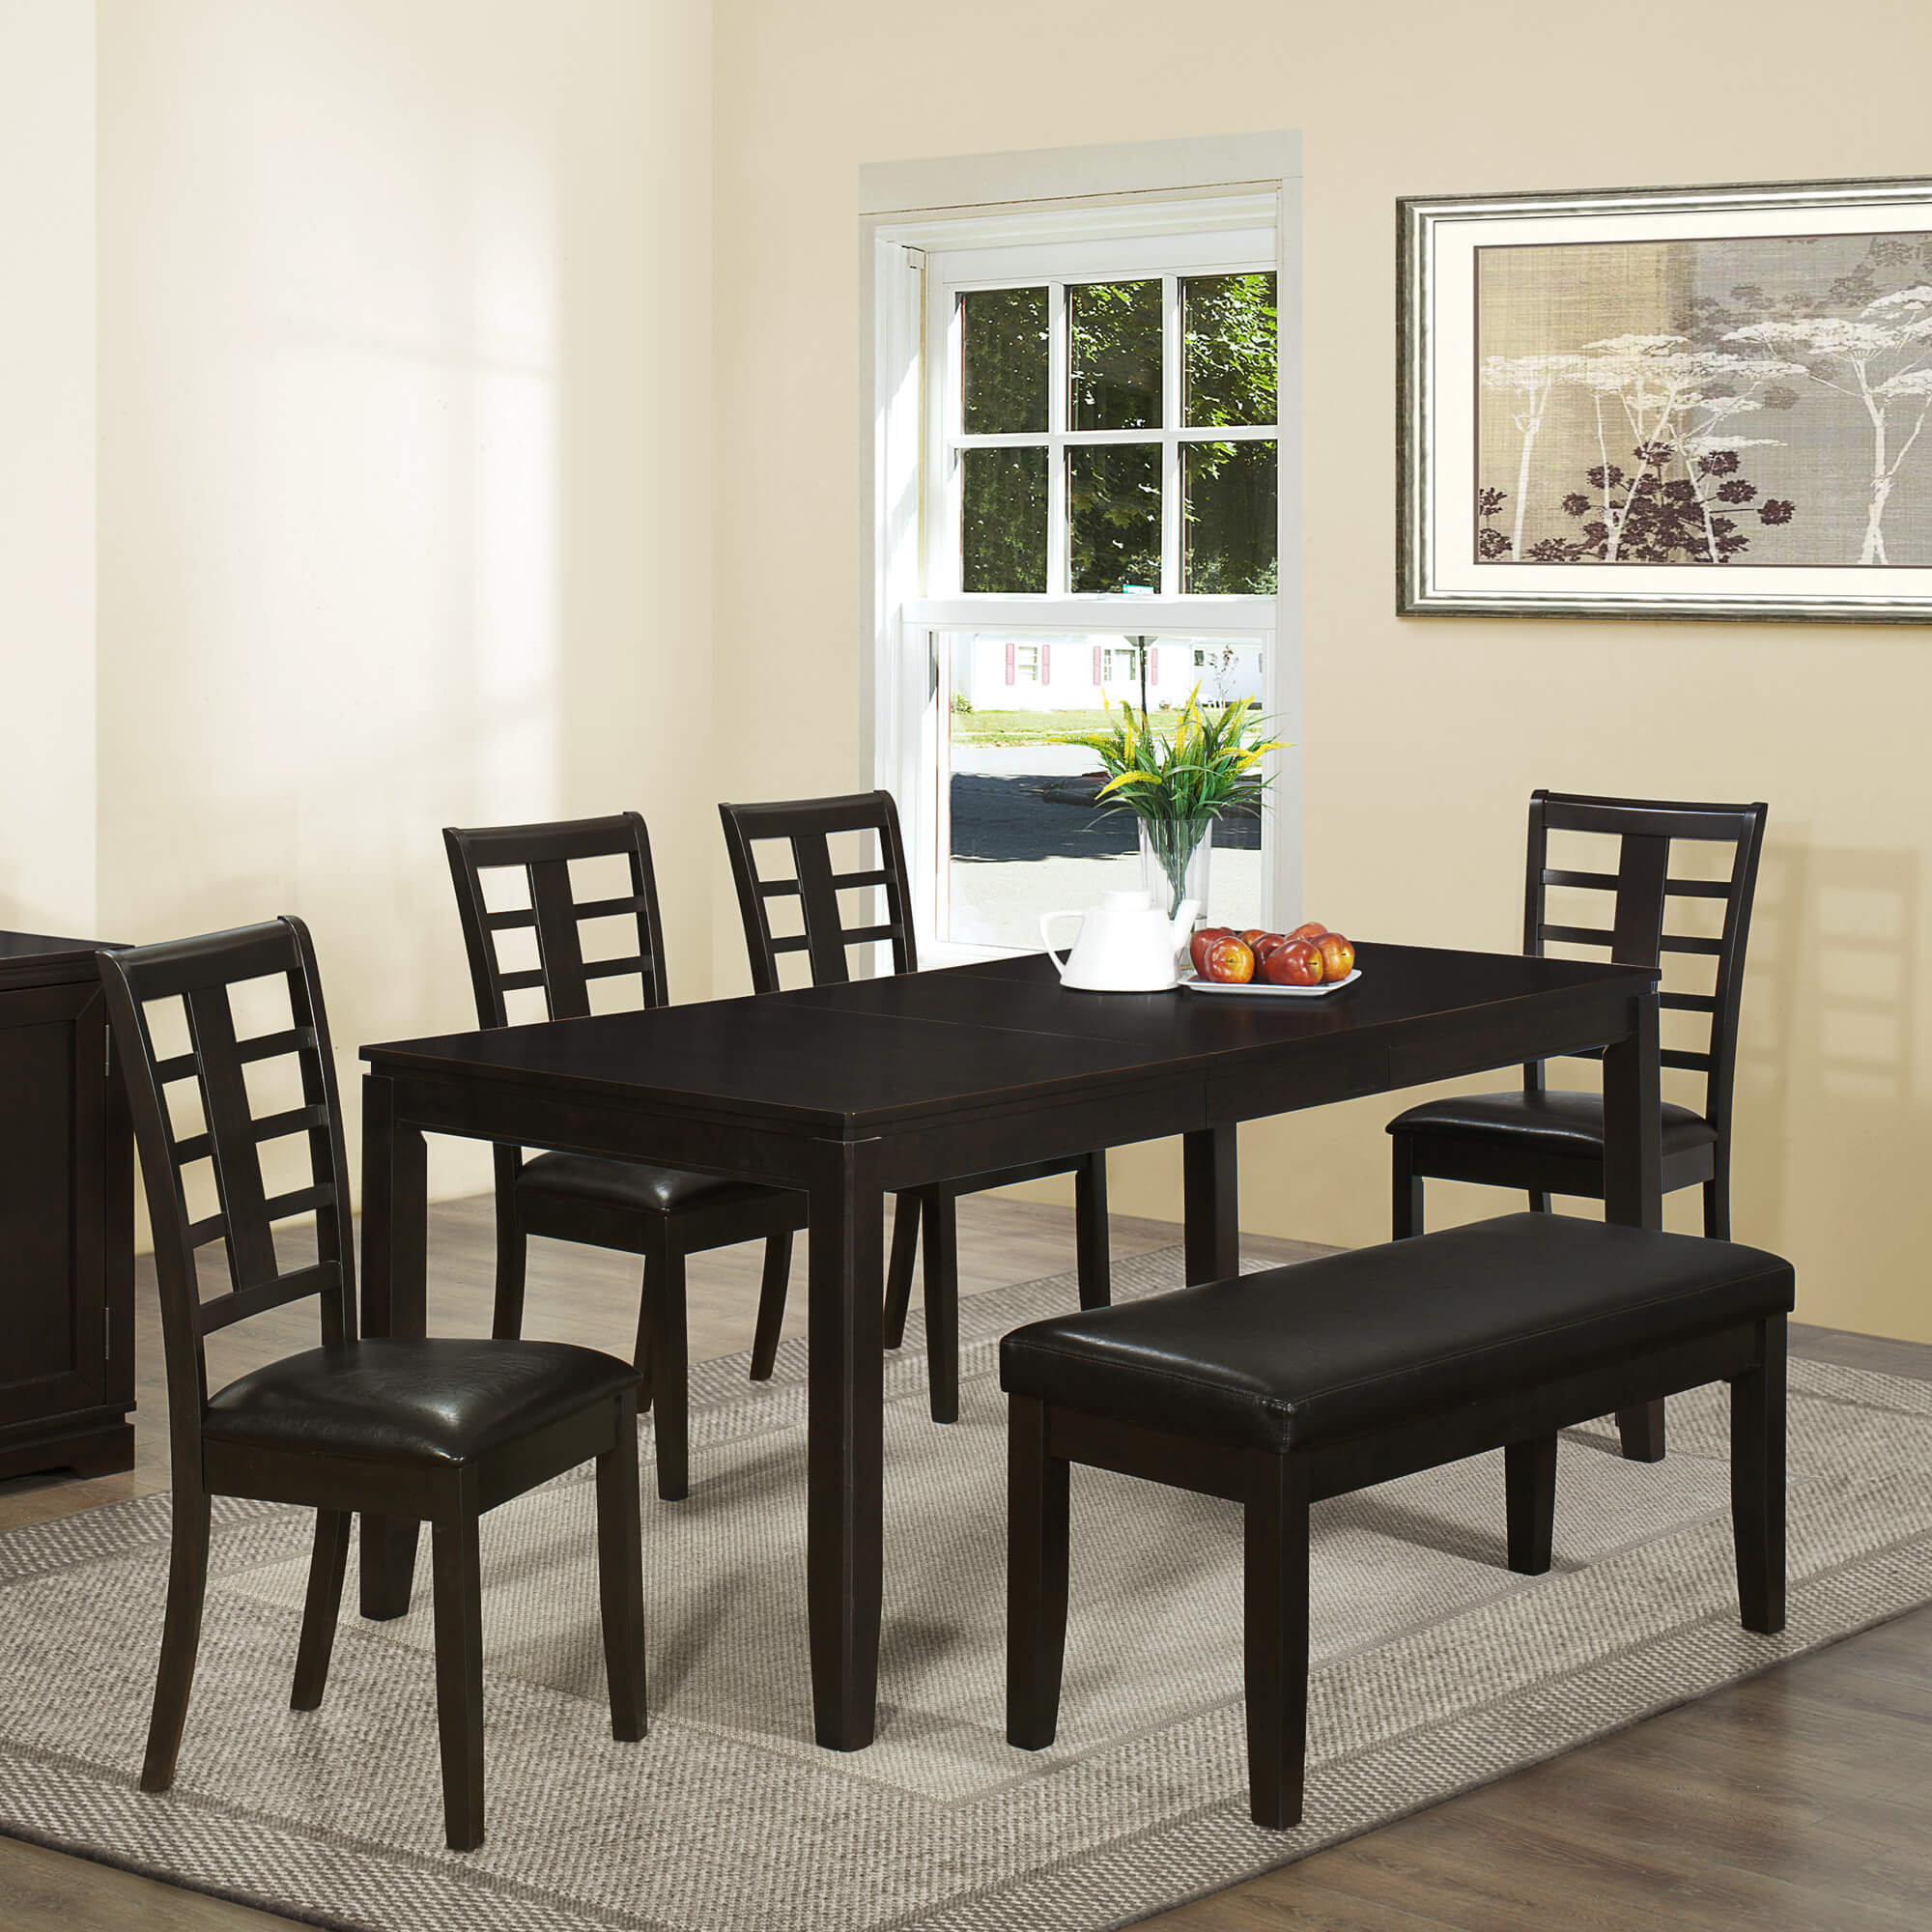 26 big small dining room sets with bench seating for Good dining tables for small spaces